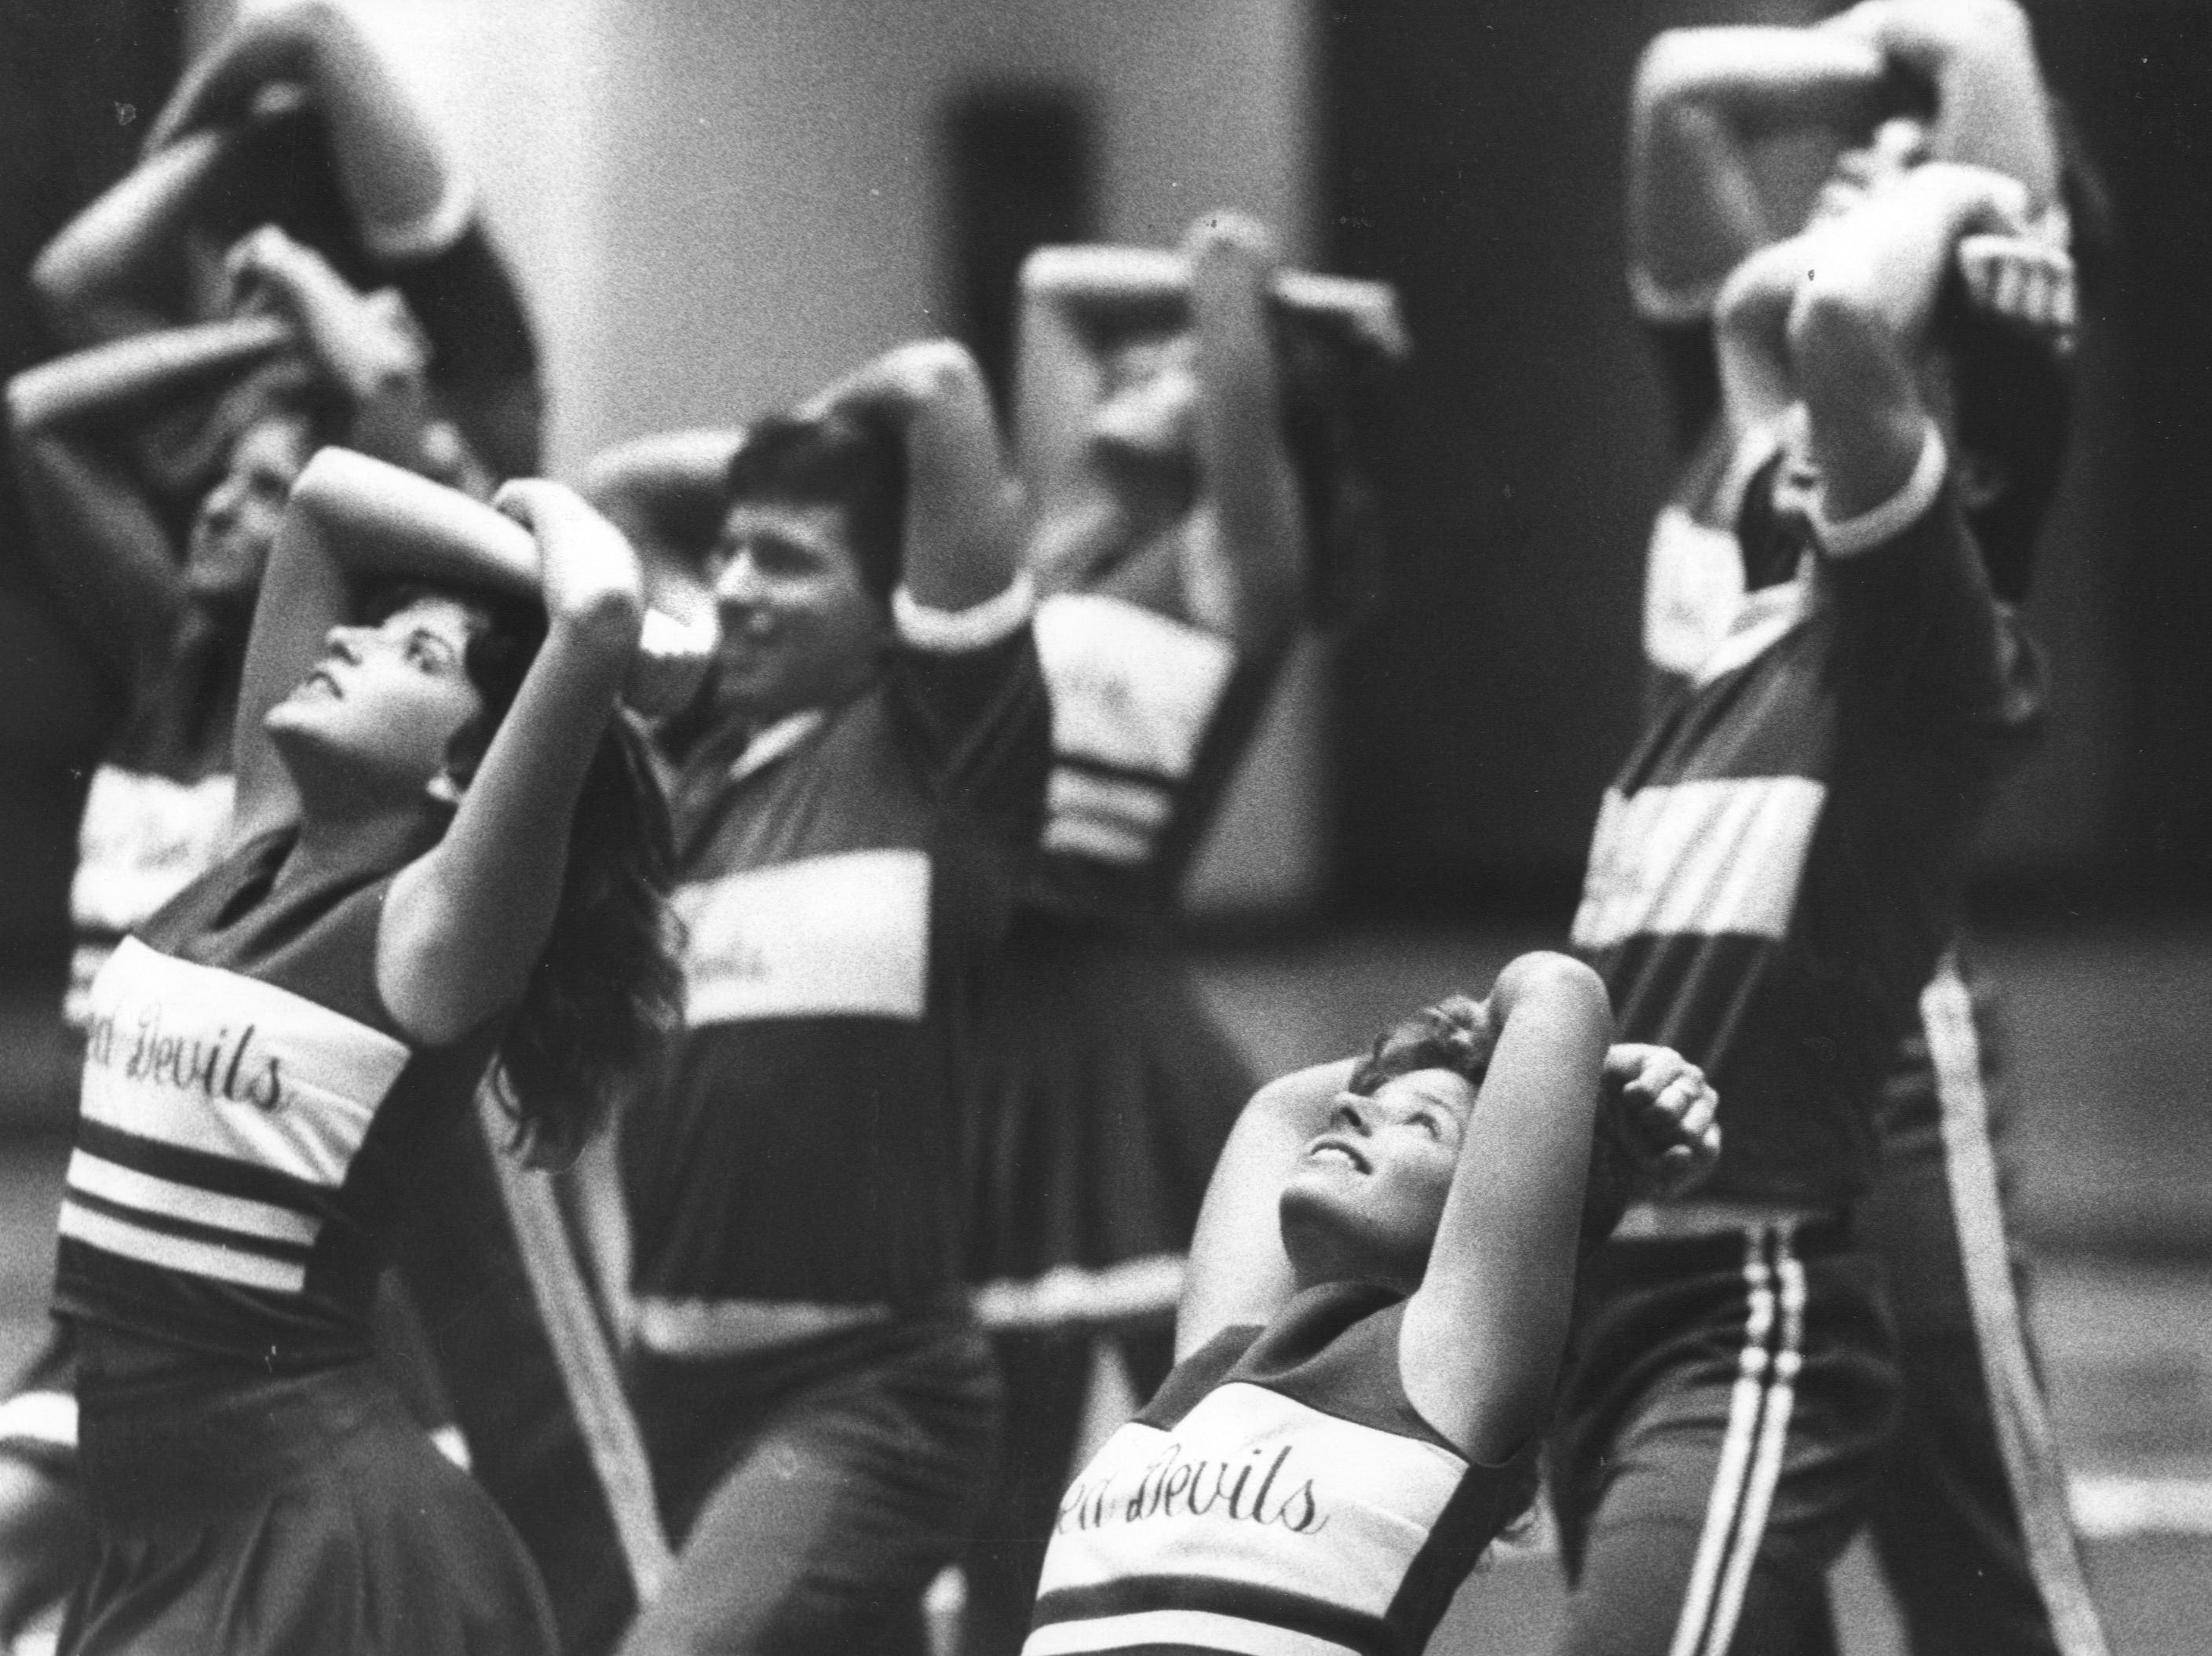 The Jeffersonville High School cheerleaders performed yesterday at the school. The squad will participate after Christmas in the National Cheerleaders Association annual High School Cheerleaders National Championship in Florida. Dec. 23, 1986